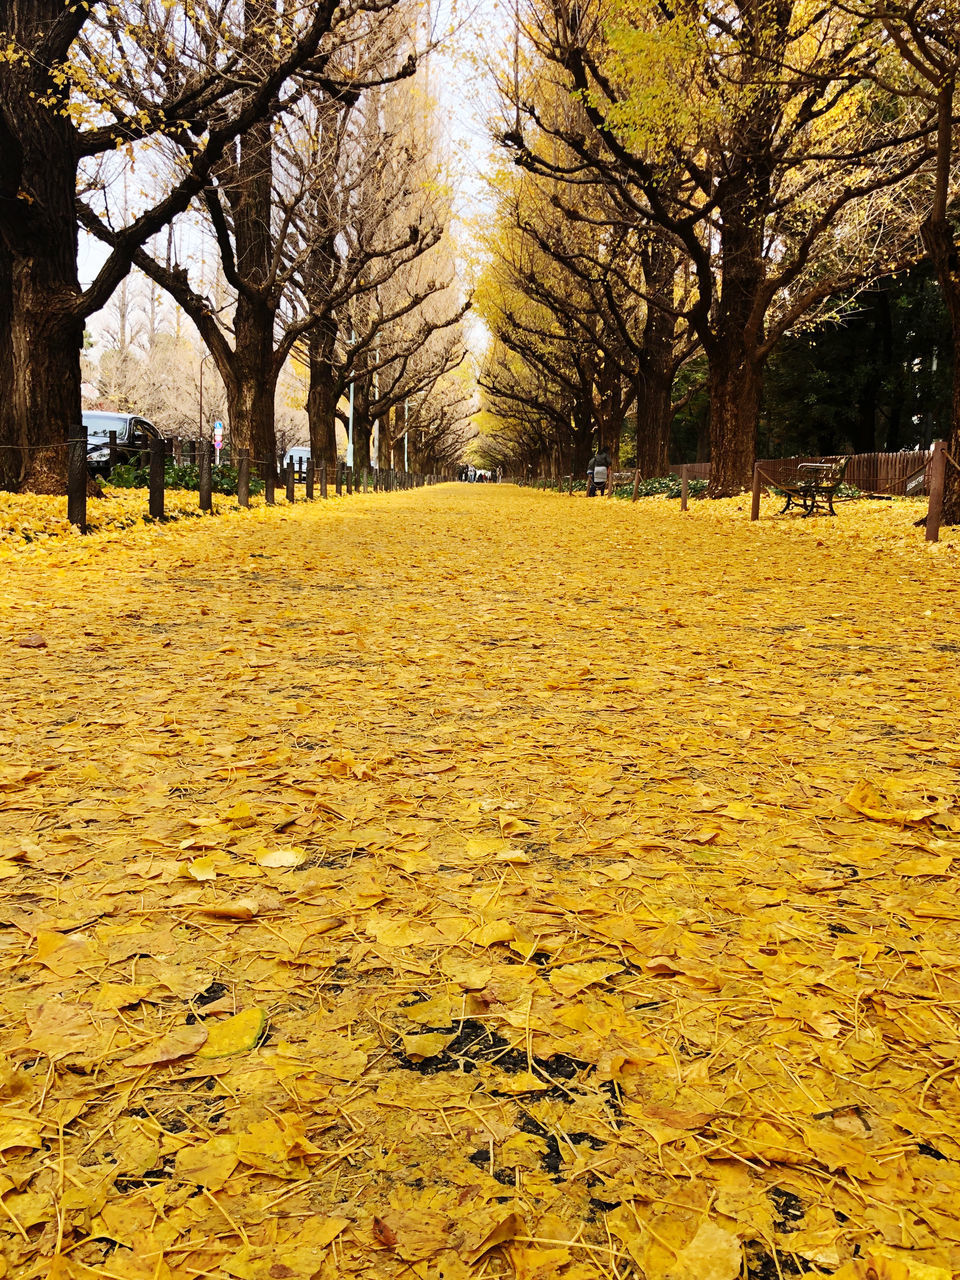 AUTUMN LEAVES ON FIELD AGAINST TREES IN PARK DURING RAINY SEASON